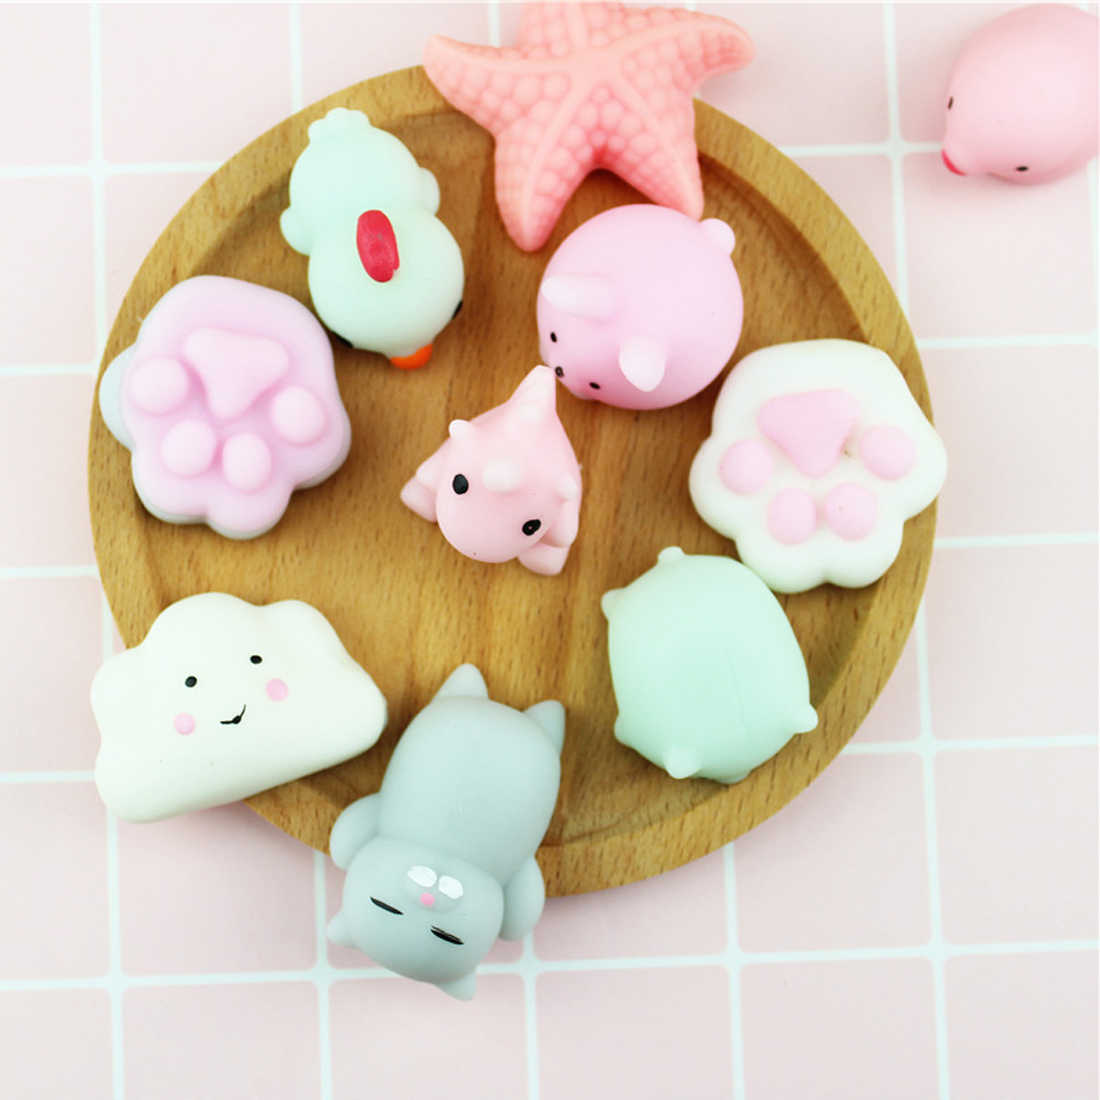 Etmakit Mini Squishy toy Seal Cute Phone Straps Slow Rising Soft Press Squeeze Kawaii Bread Cake Kids Toy Phone DIY Accessories